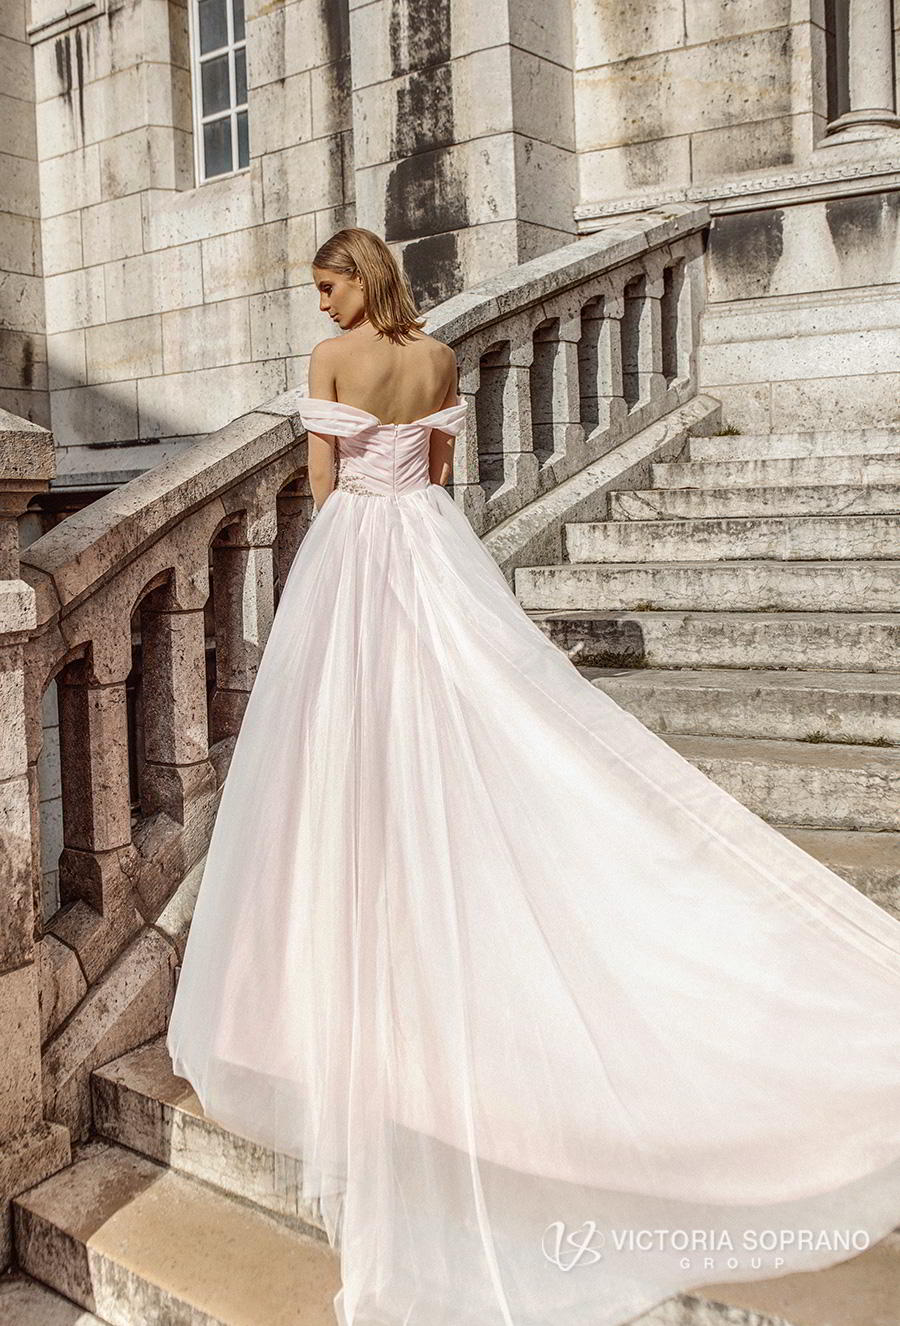 victoria soprano 2019 bridal off the shoulder sweetheart neckline ruched wrap over bodice romantic blush ball gown wedding dress chapel train (estel) bv